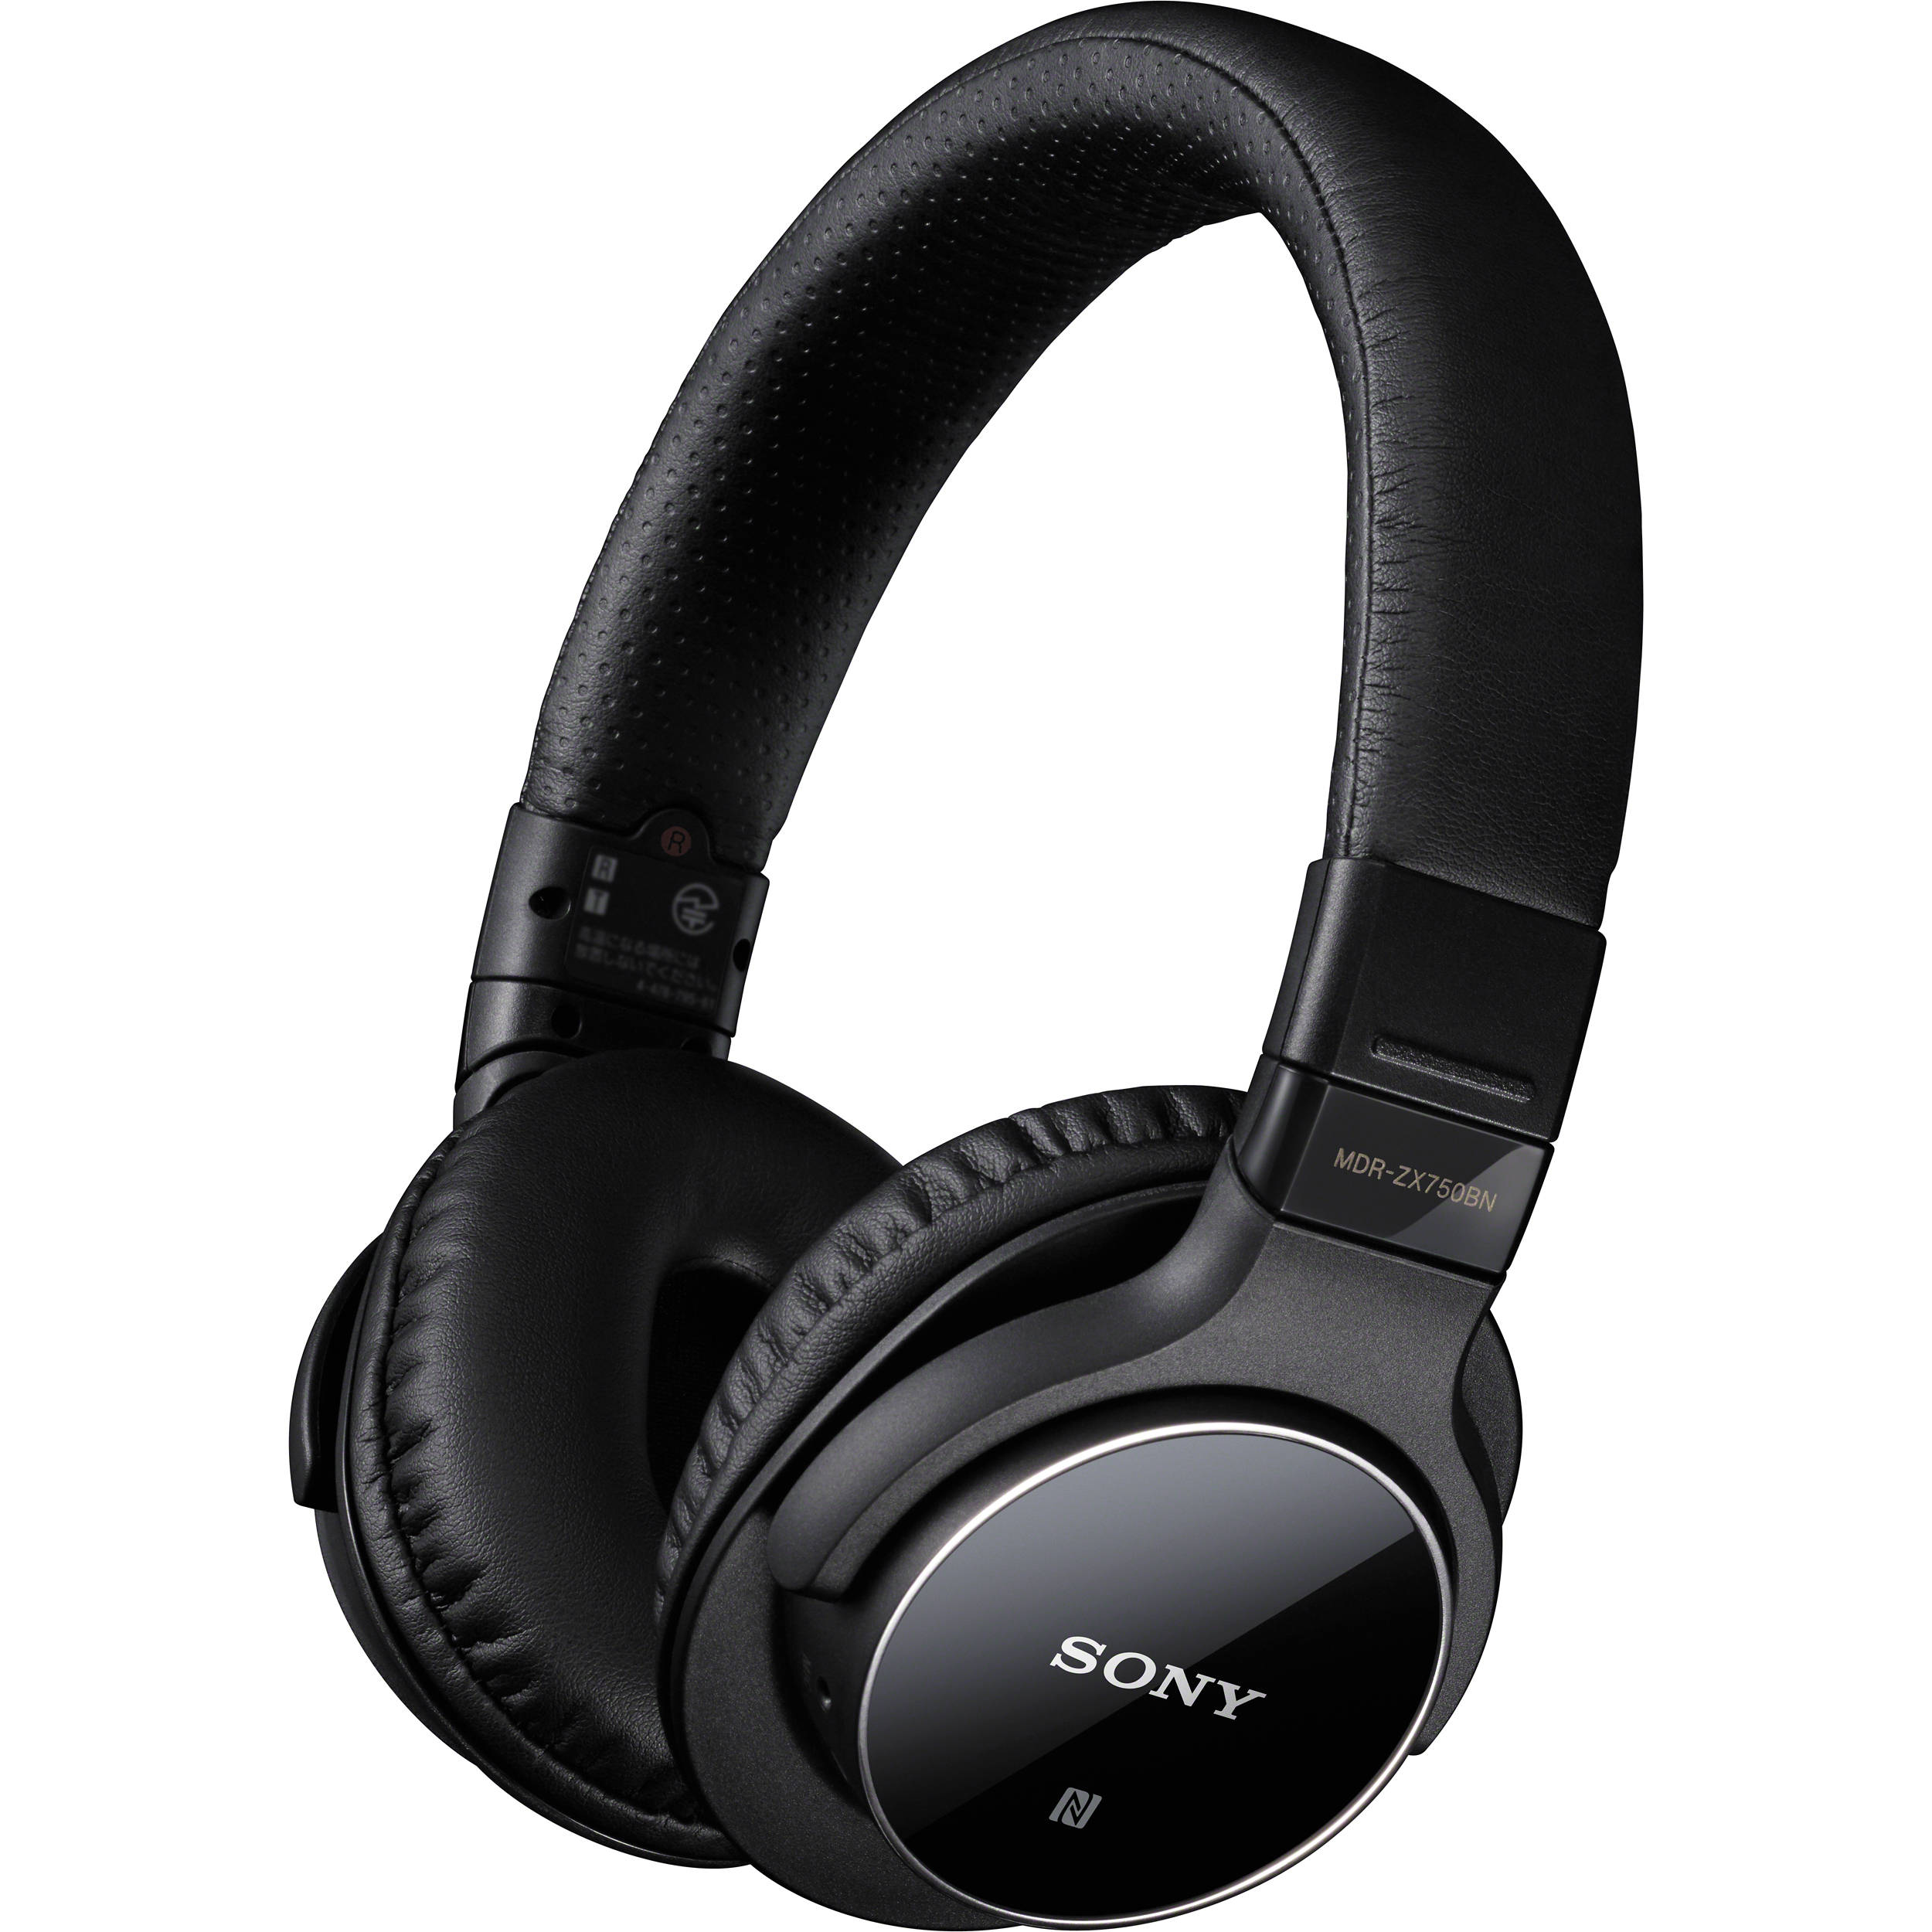 Bluetooth Wireless Headset Walmart: Sony MDR-ZX750BN Noise-Canceling Bluetooth Wireless MDRZX750BN